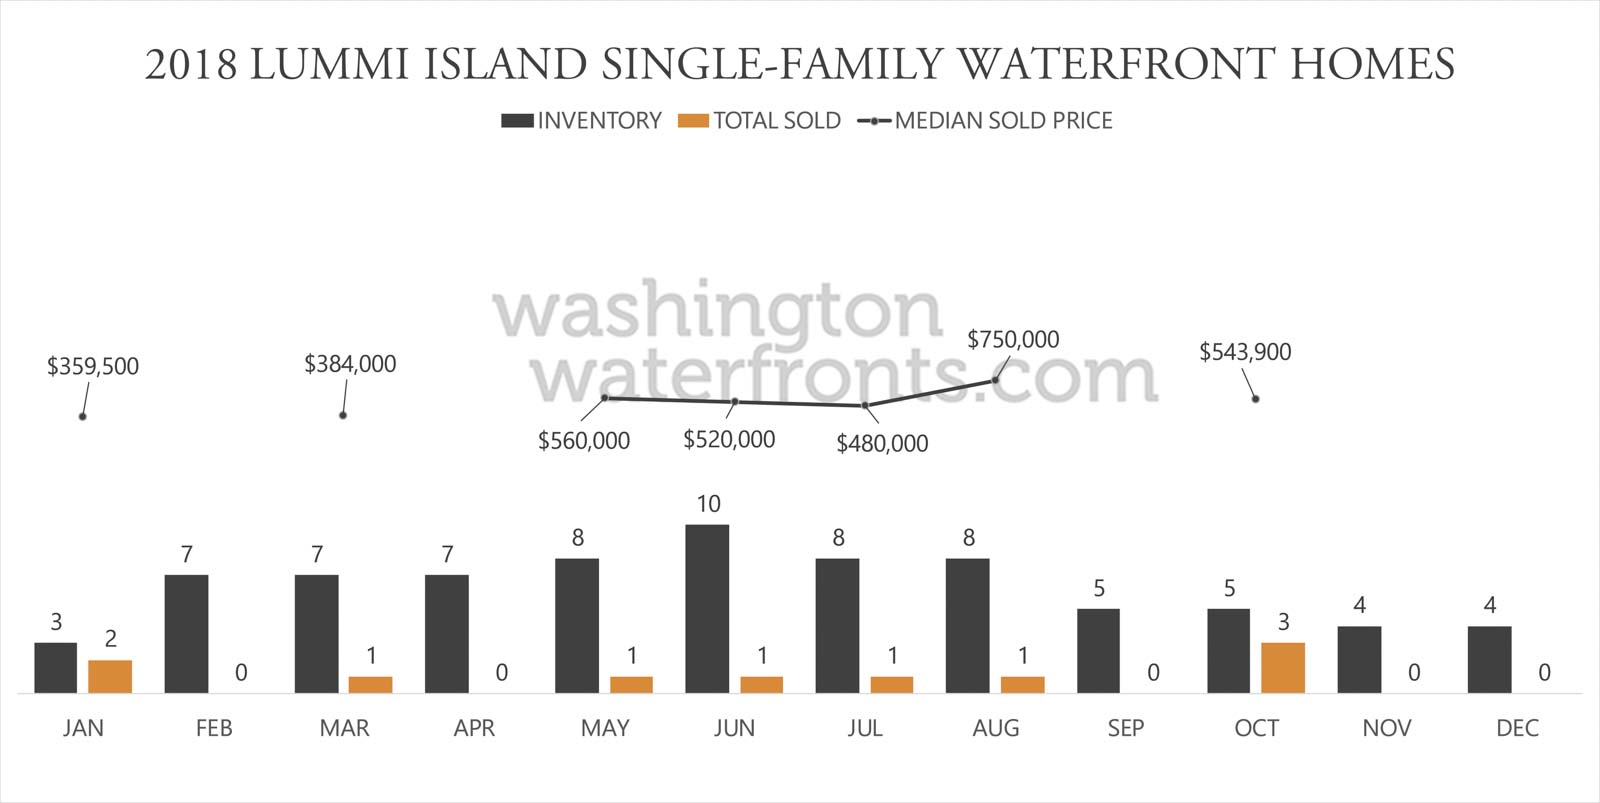 Lummi Island Waterfront Inventory